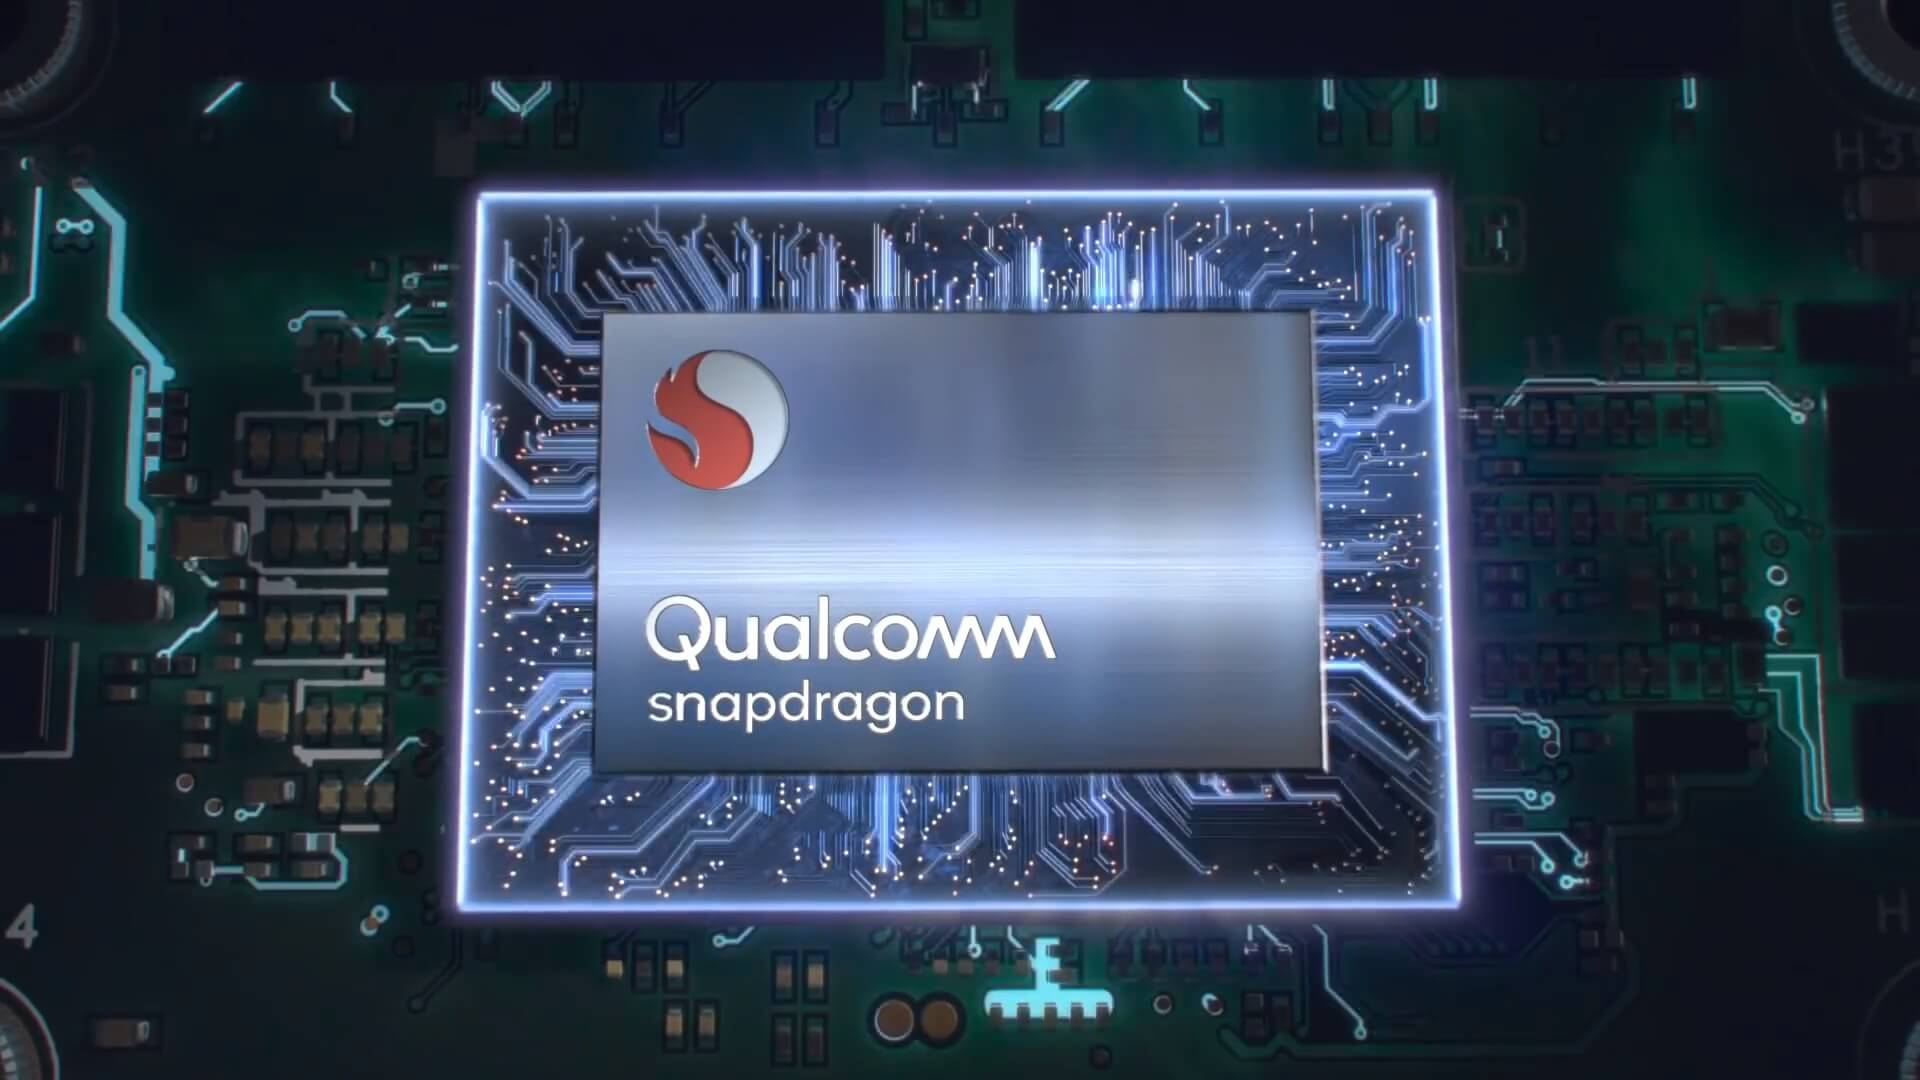 5G destekli snapdragon 8cx ile Intel Core i5 8250u